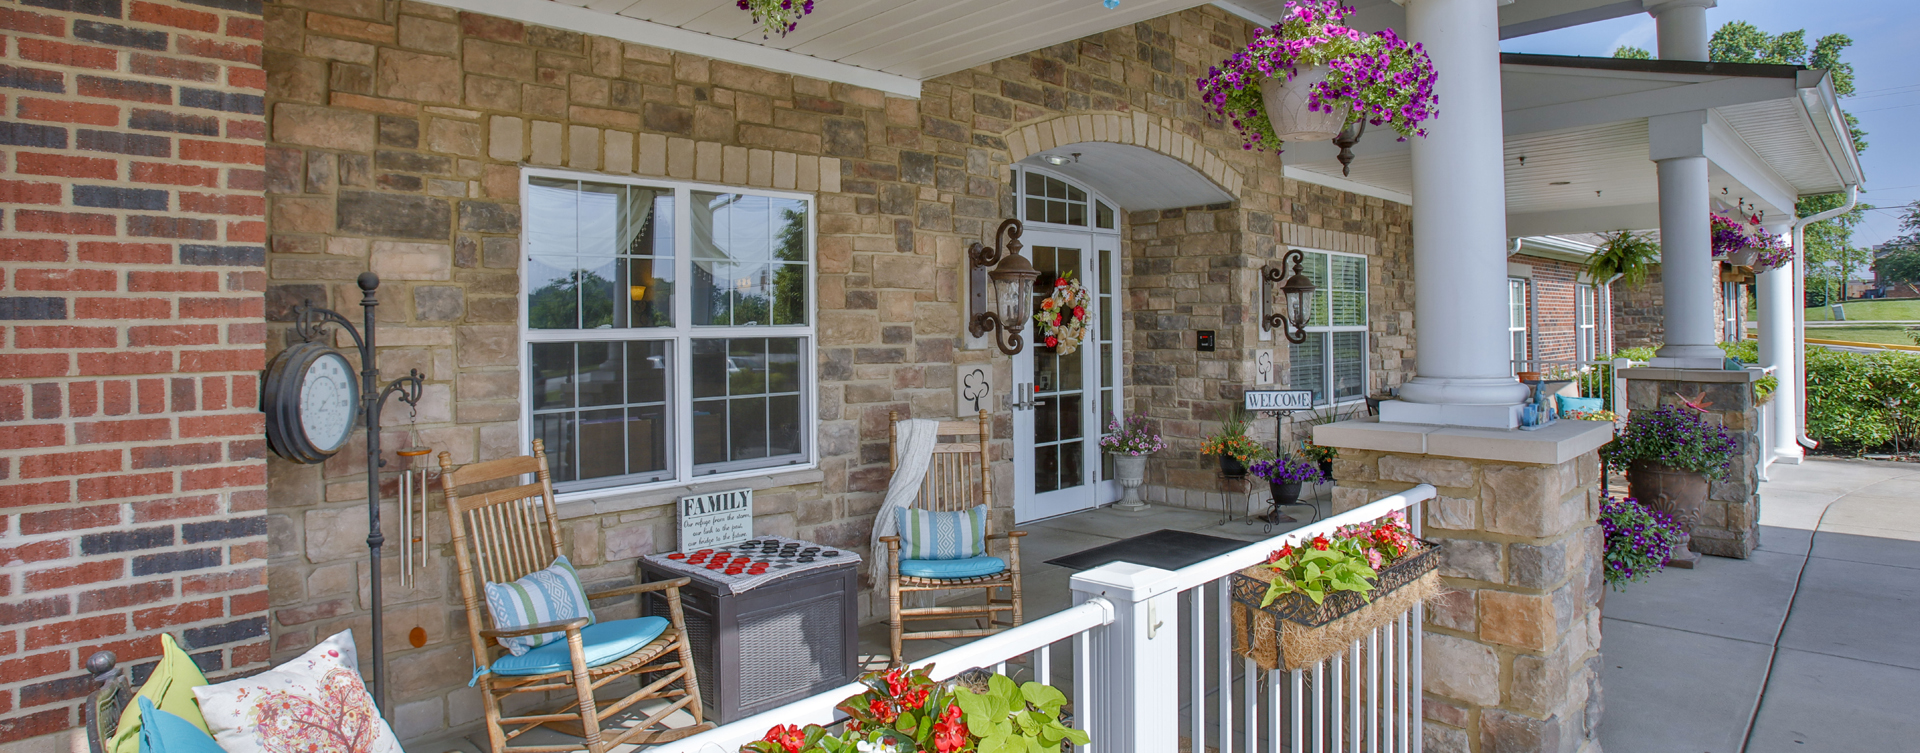 Enjoy conversations with friends on the porch at Bickford of Greenwood